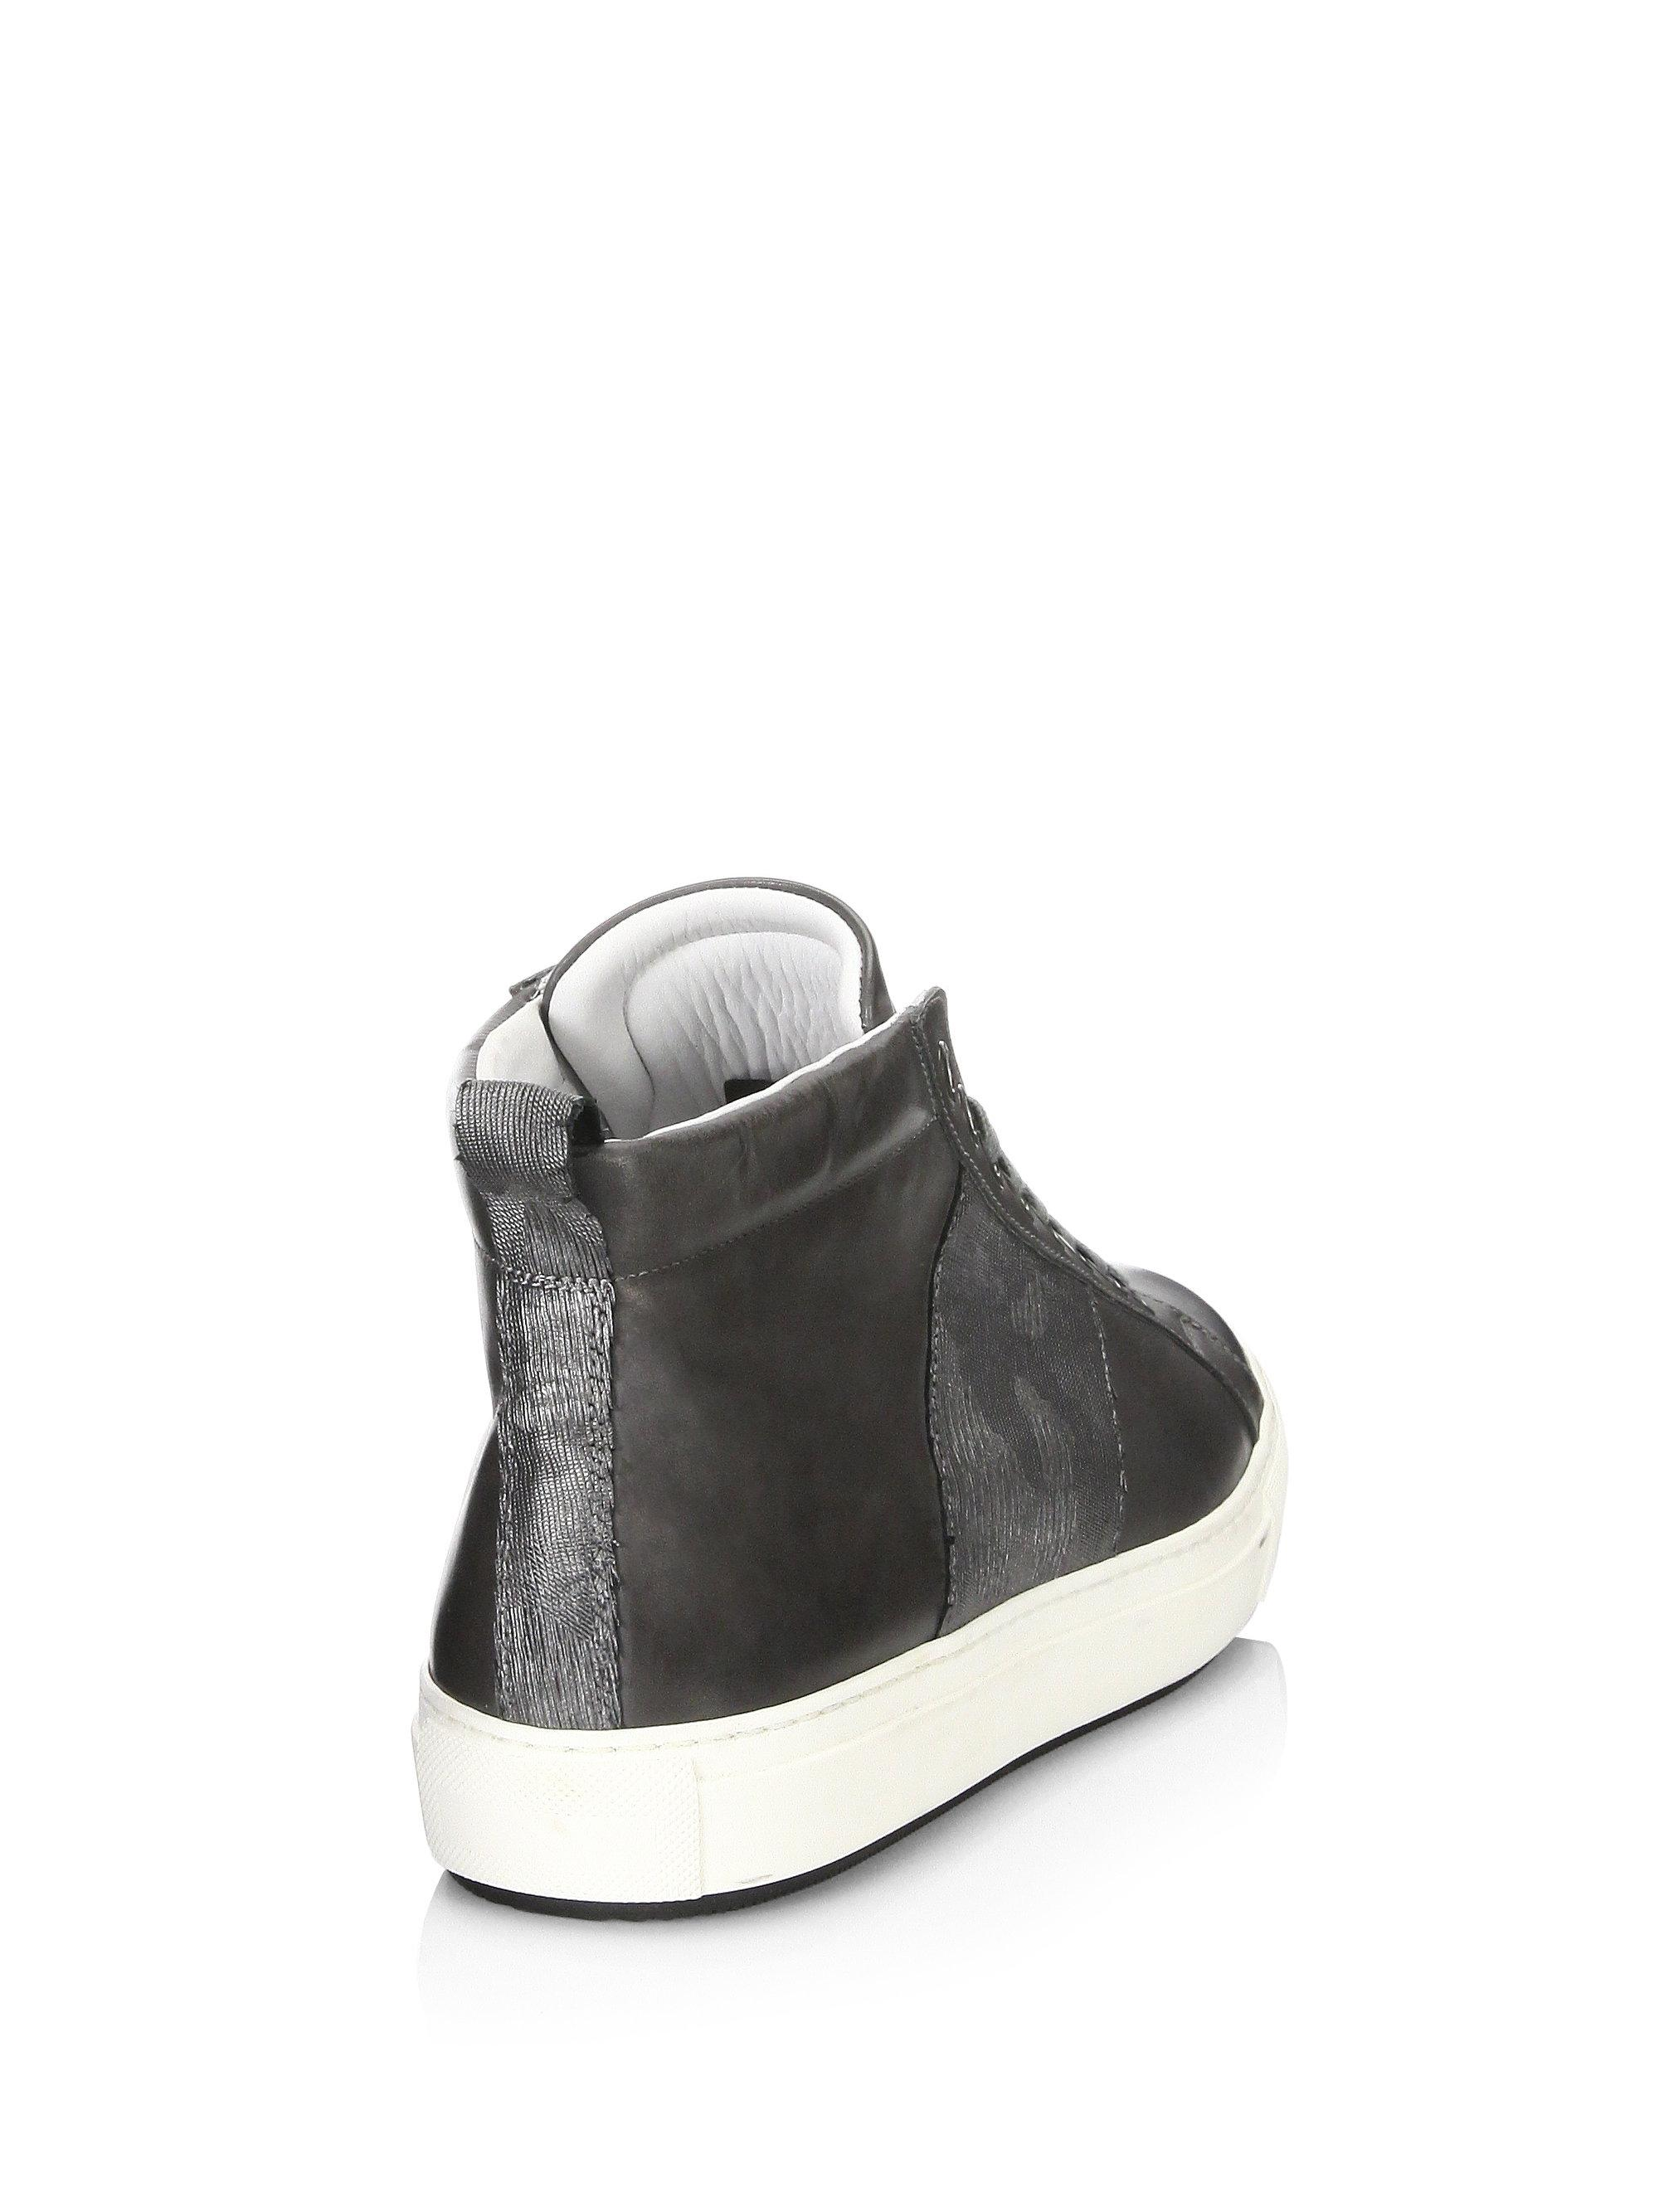 Madison Camouflage Web High-Top Sneakers hgQ8E